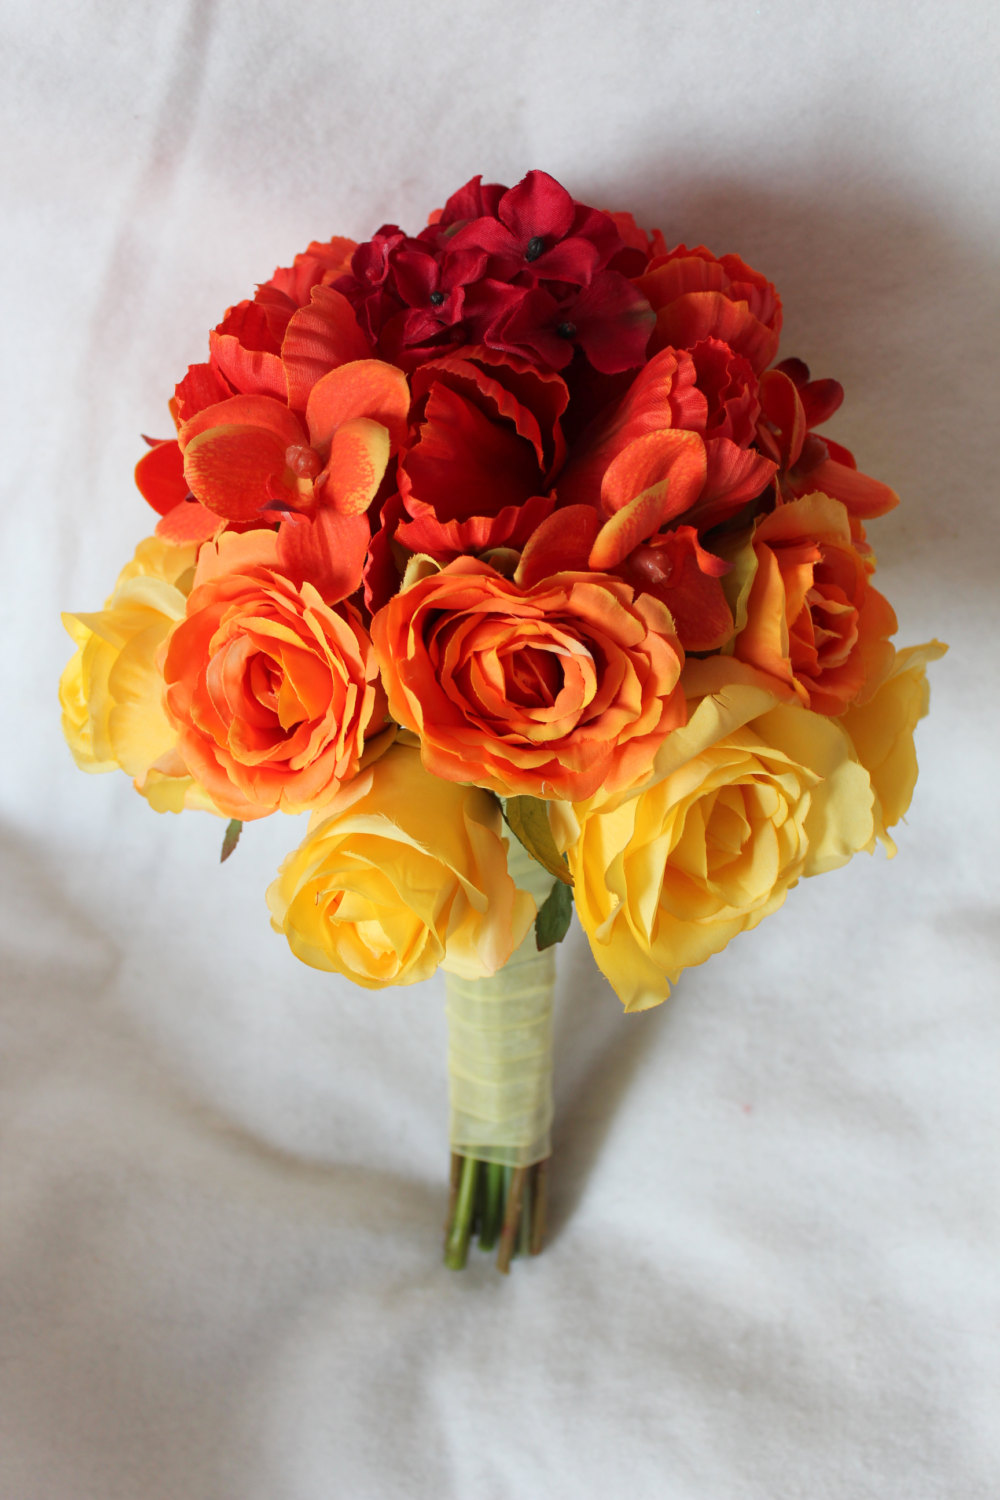 minneapolis-silk-florist-Ombre-Silk-Wedding-Flower-Bridal-Bouquet-&-Boutonniere.jpg